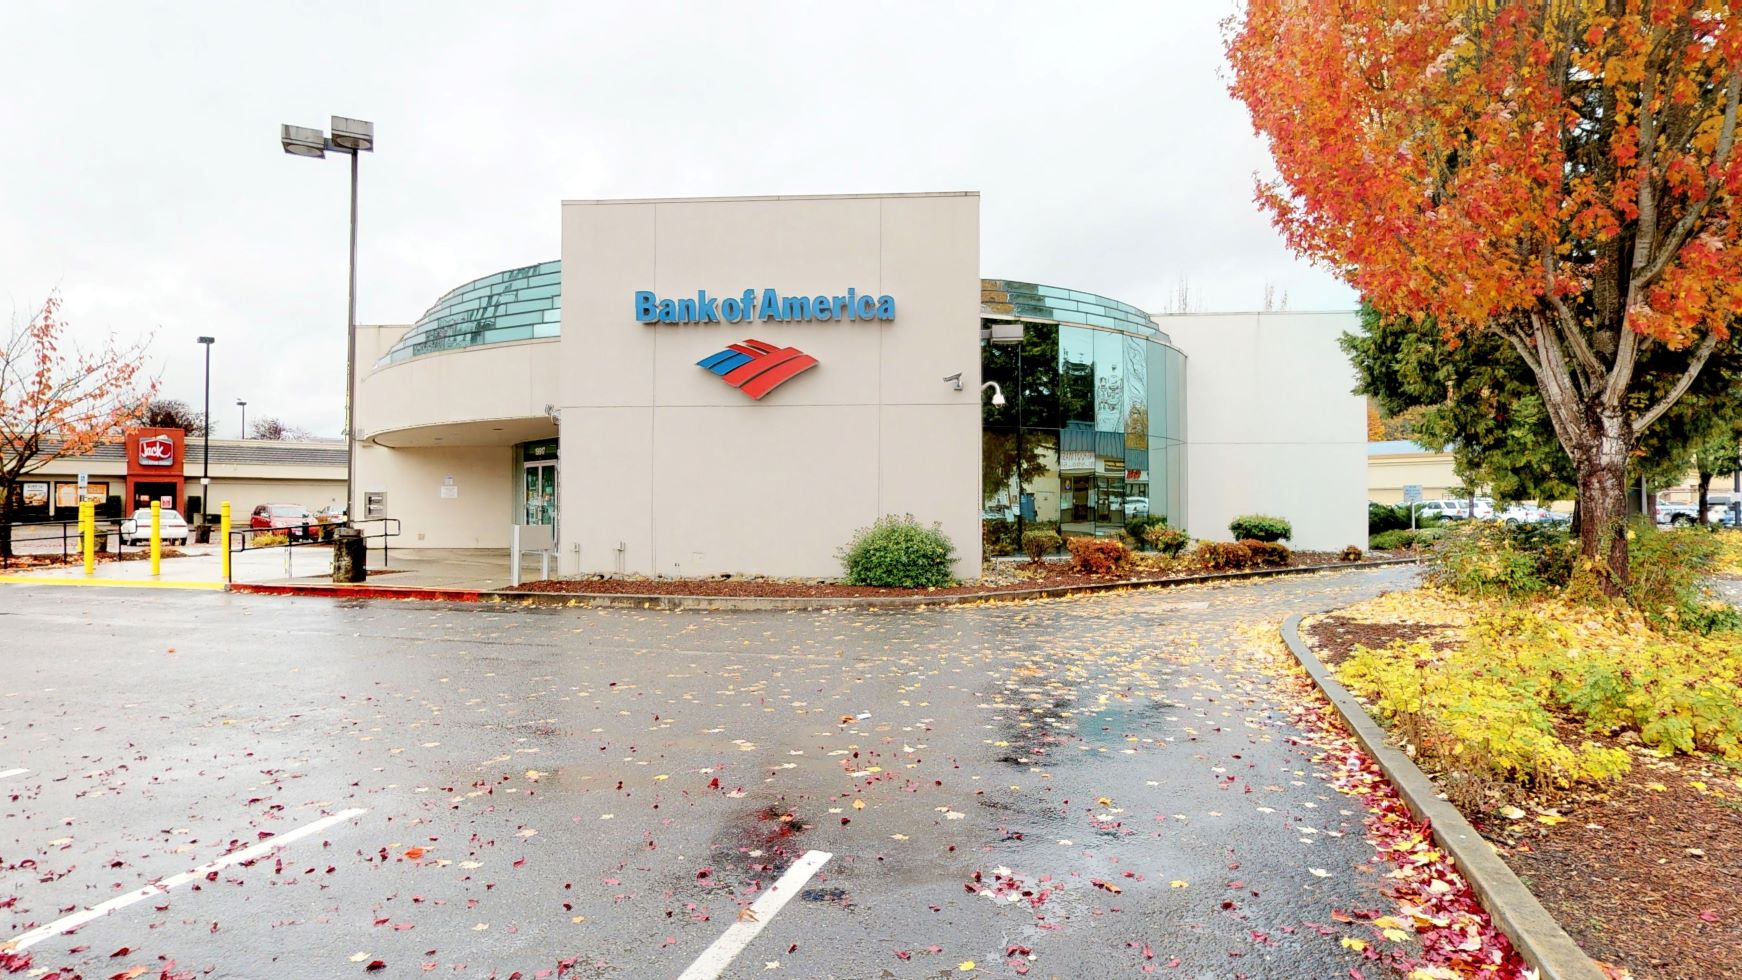 Bank of America financial center with drive-thru ATM   19917 Old Owen Rd, Monroe, WA 98272